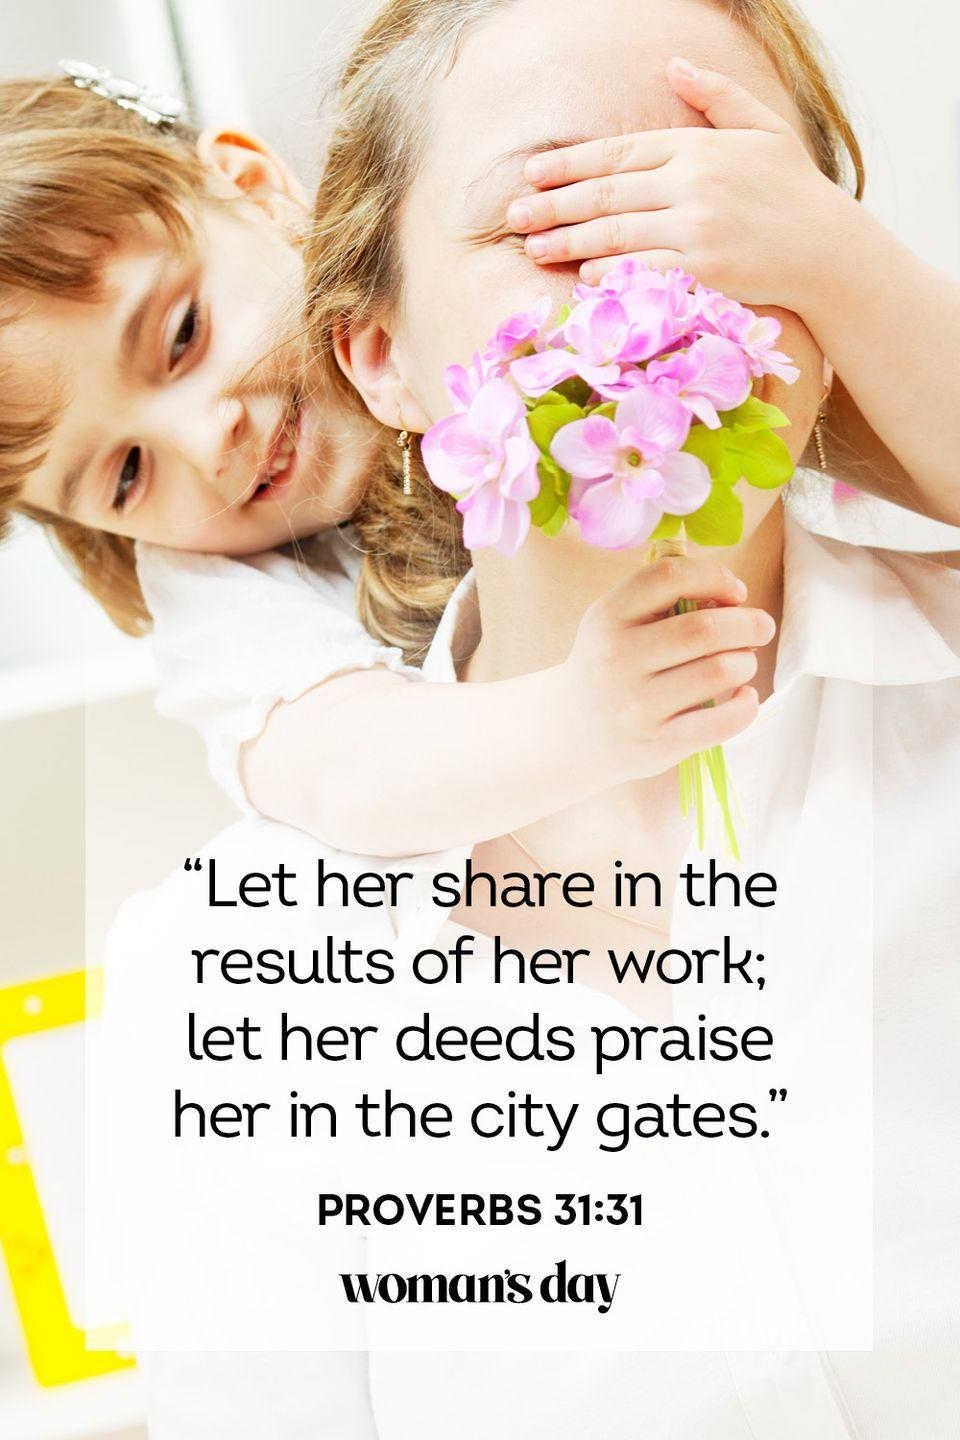 "<p>""Let her share in the results of her work; let her deeds praise her in the city gates.""</p><p><strong>The Good News: </strong>A mother who lives well and raises her children well should be celebrated and will be rewarded. </p>"